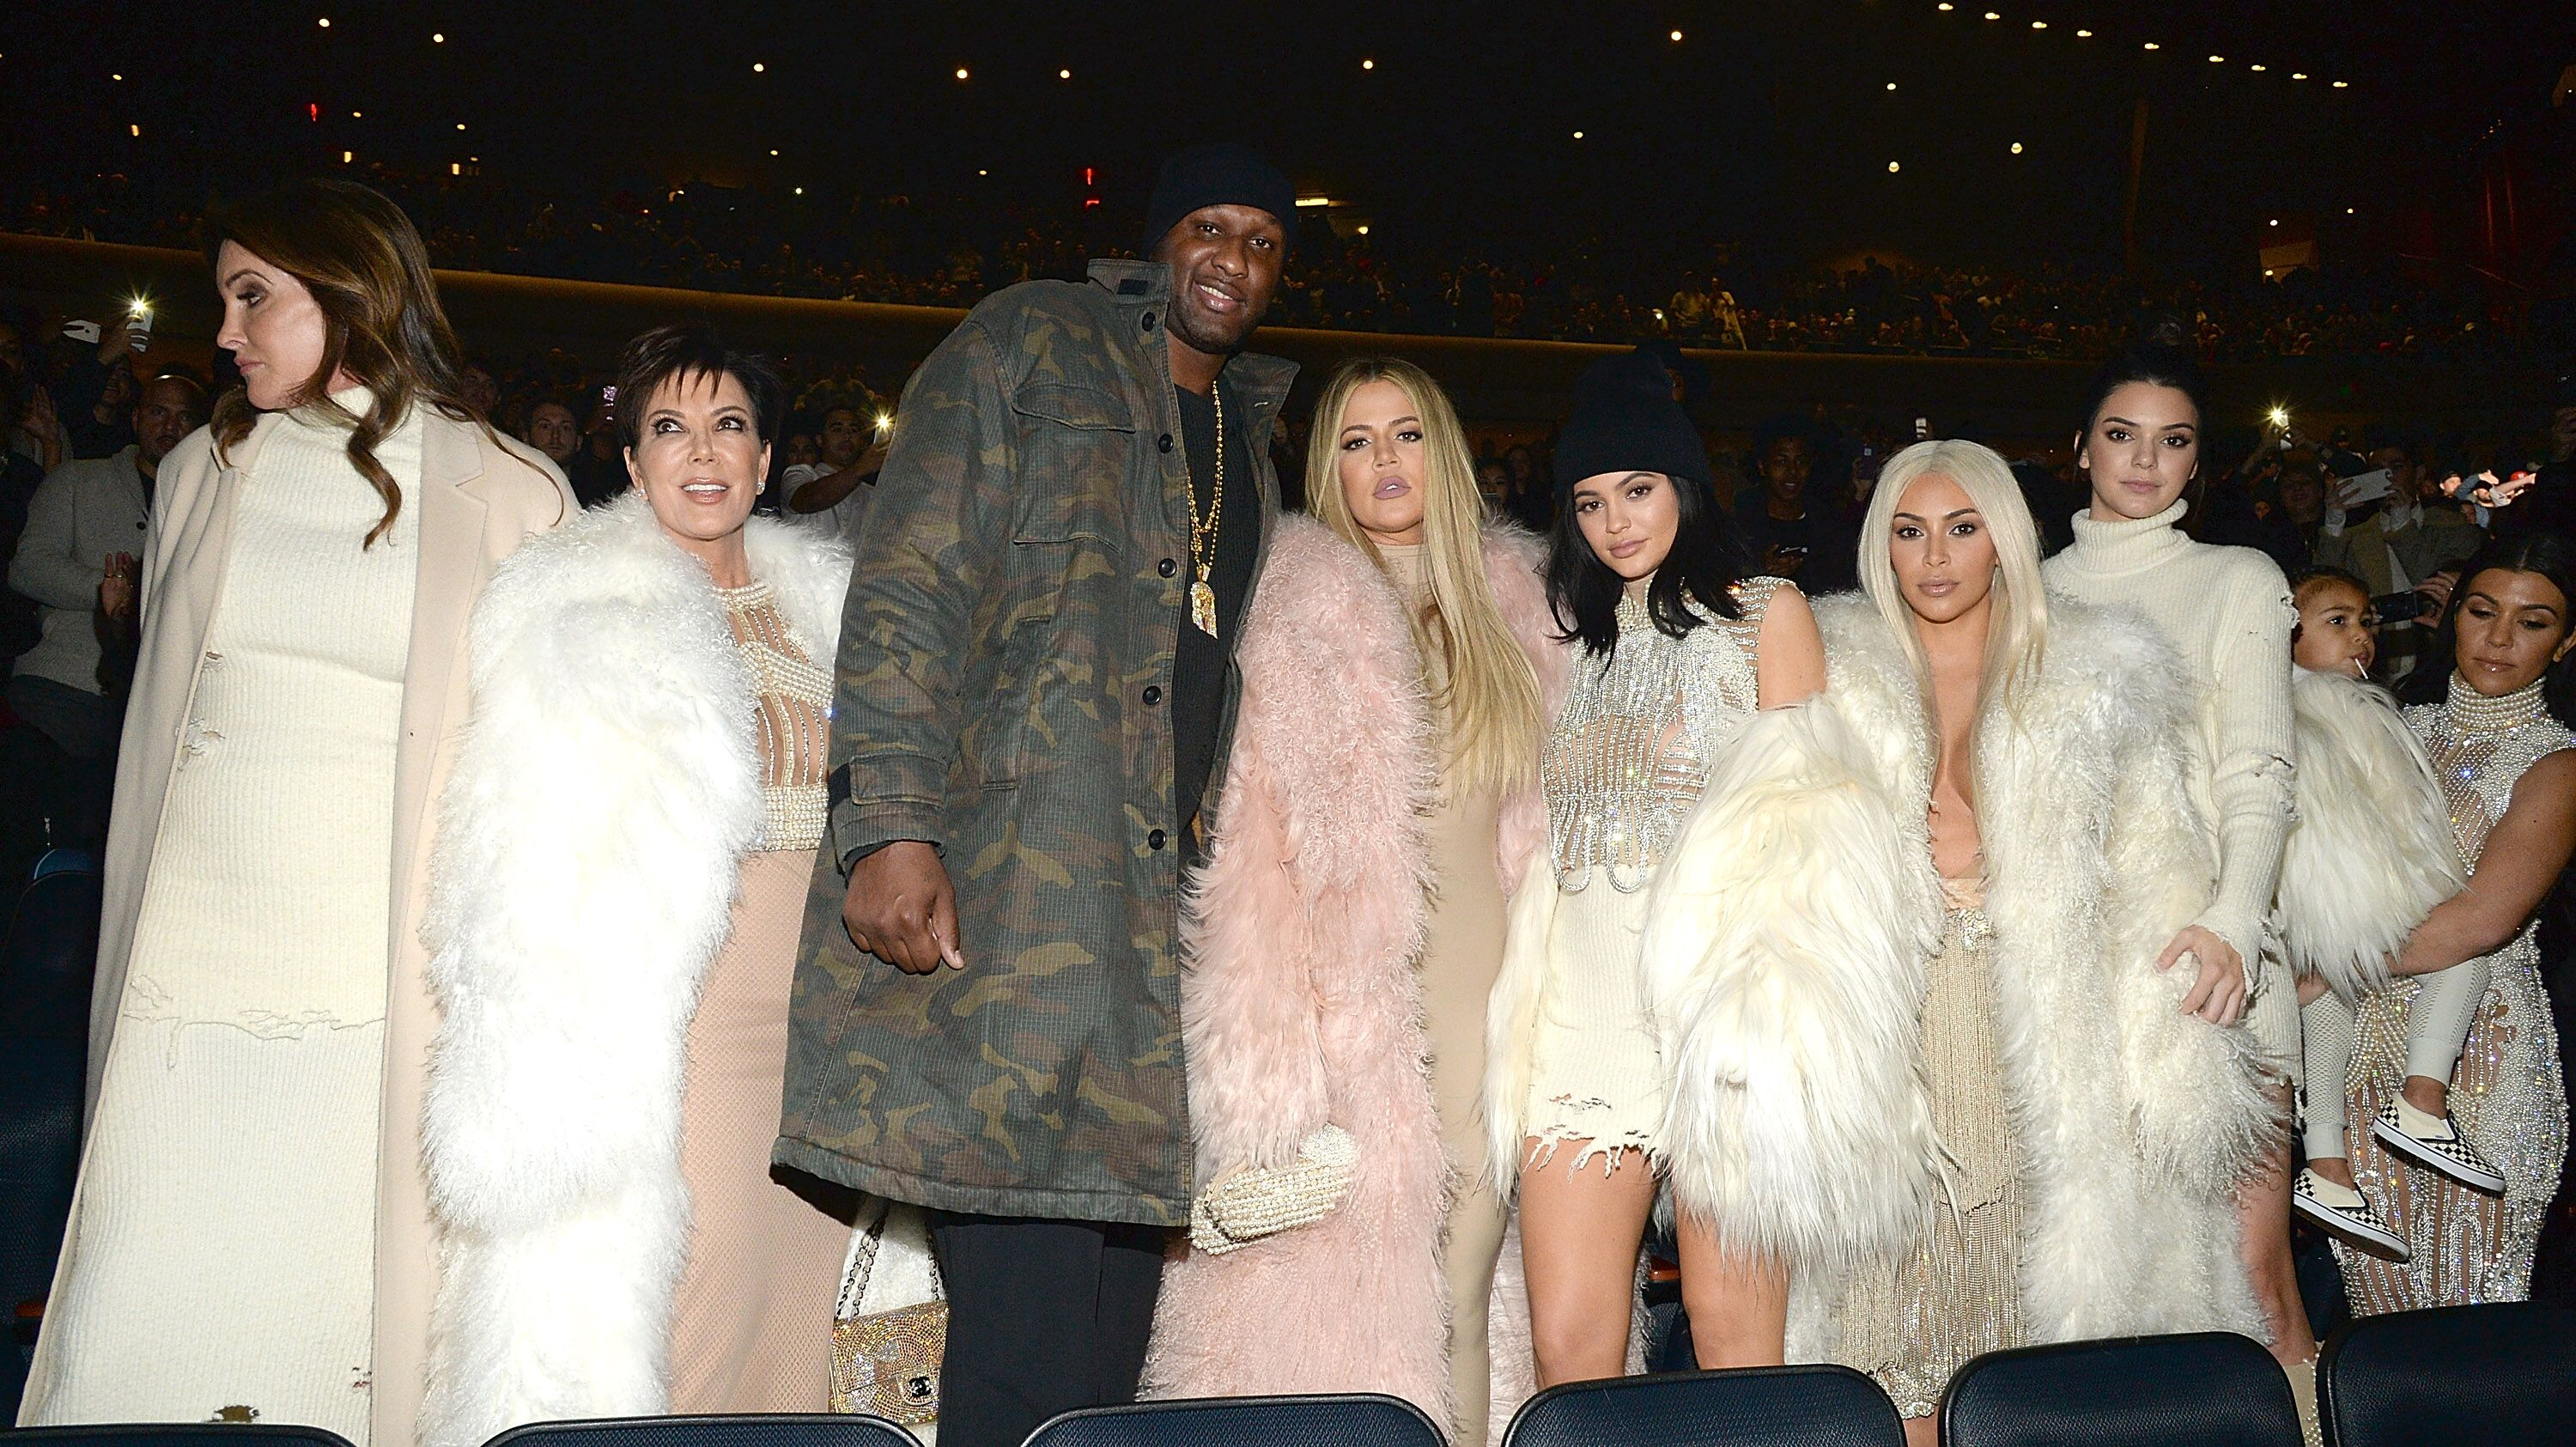 Lamar Odom and ex-wife Khloé Kardashian and her family/ Source: Getty Images